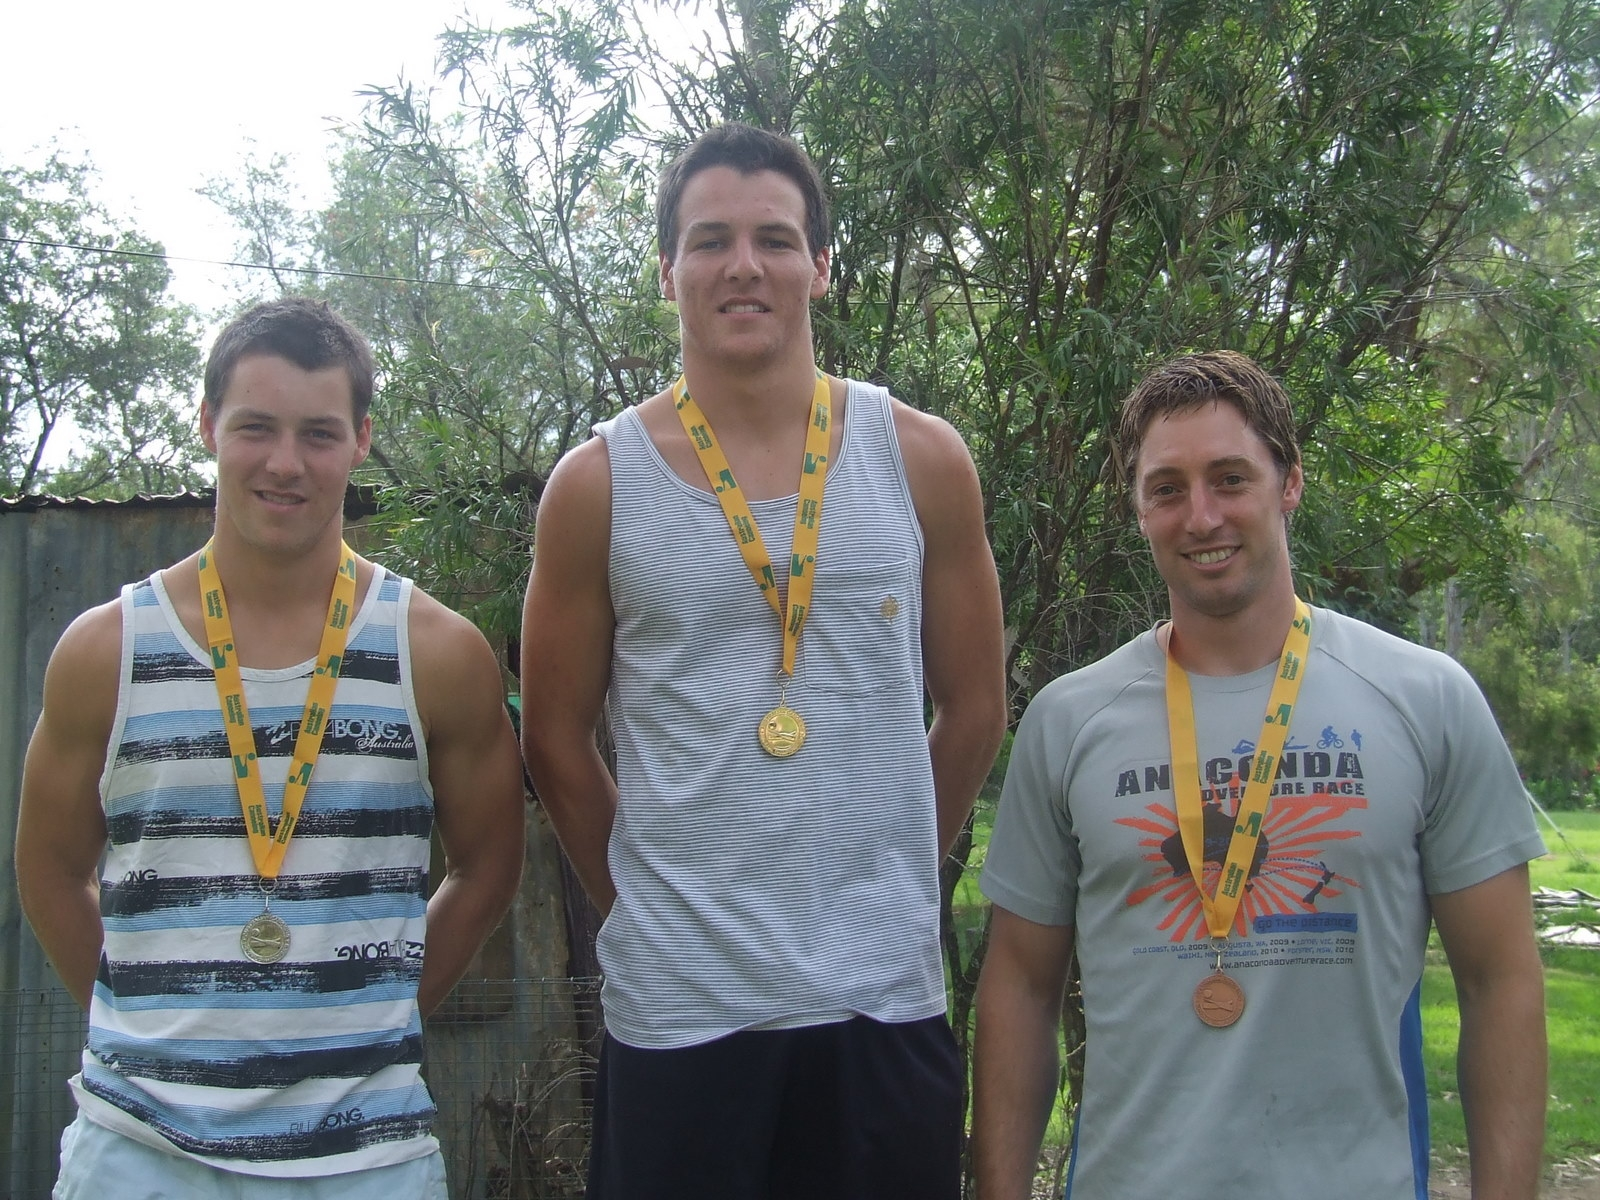 2011 Australian Down River Team Representatives from left to Right, Alex McIntyre, Robert McIntyre and Peter Lockett, all Prijon paddlers.